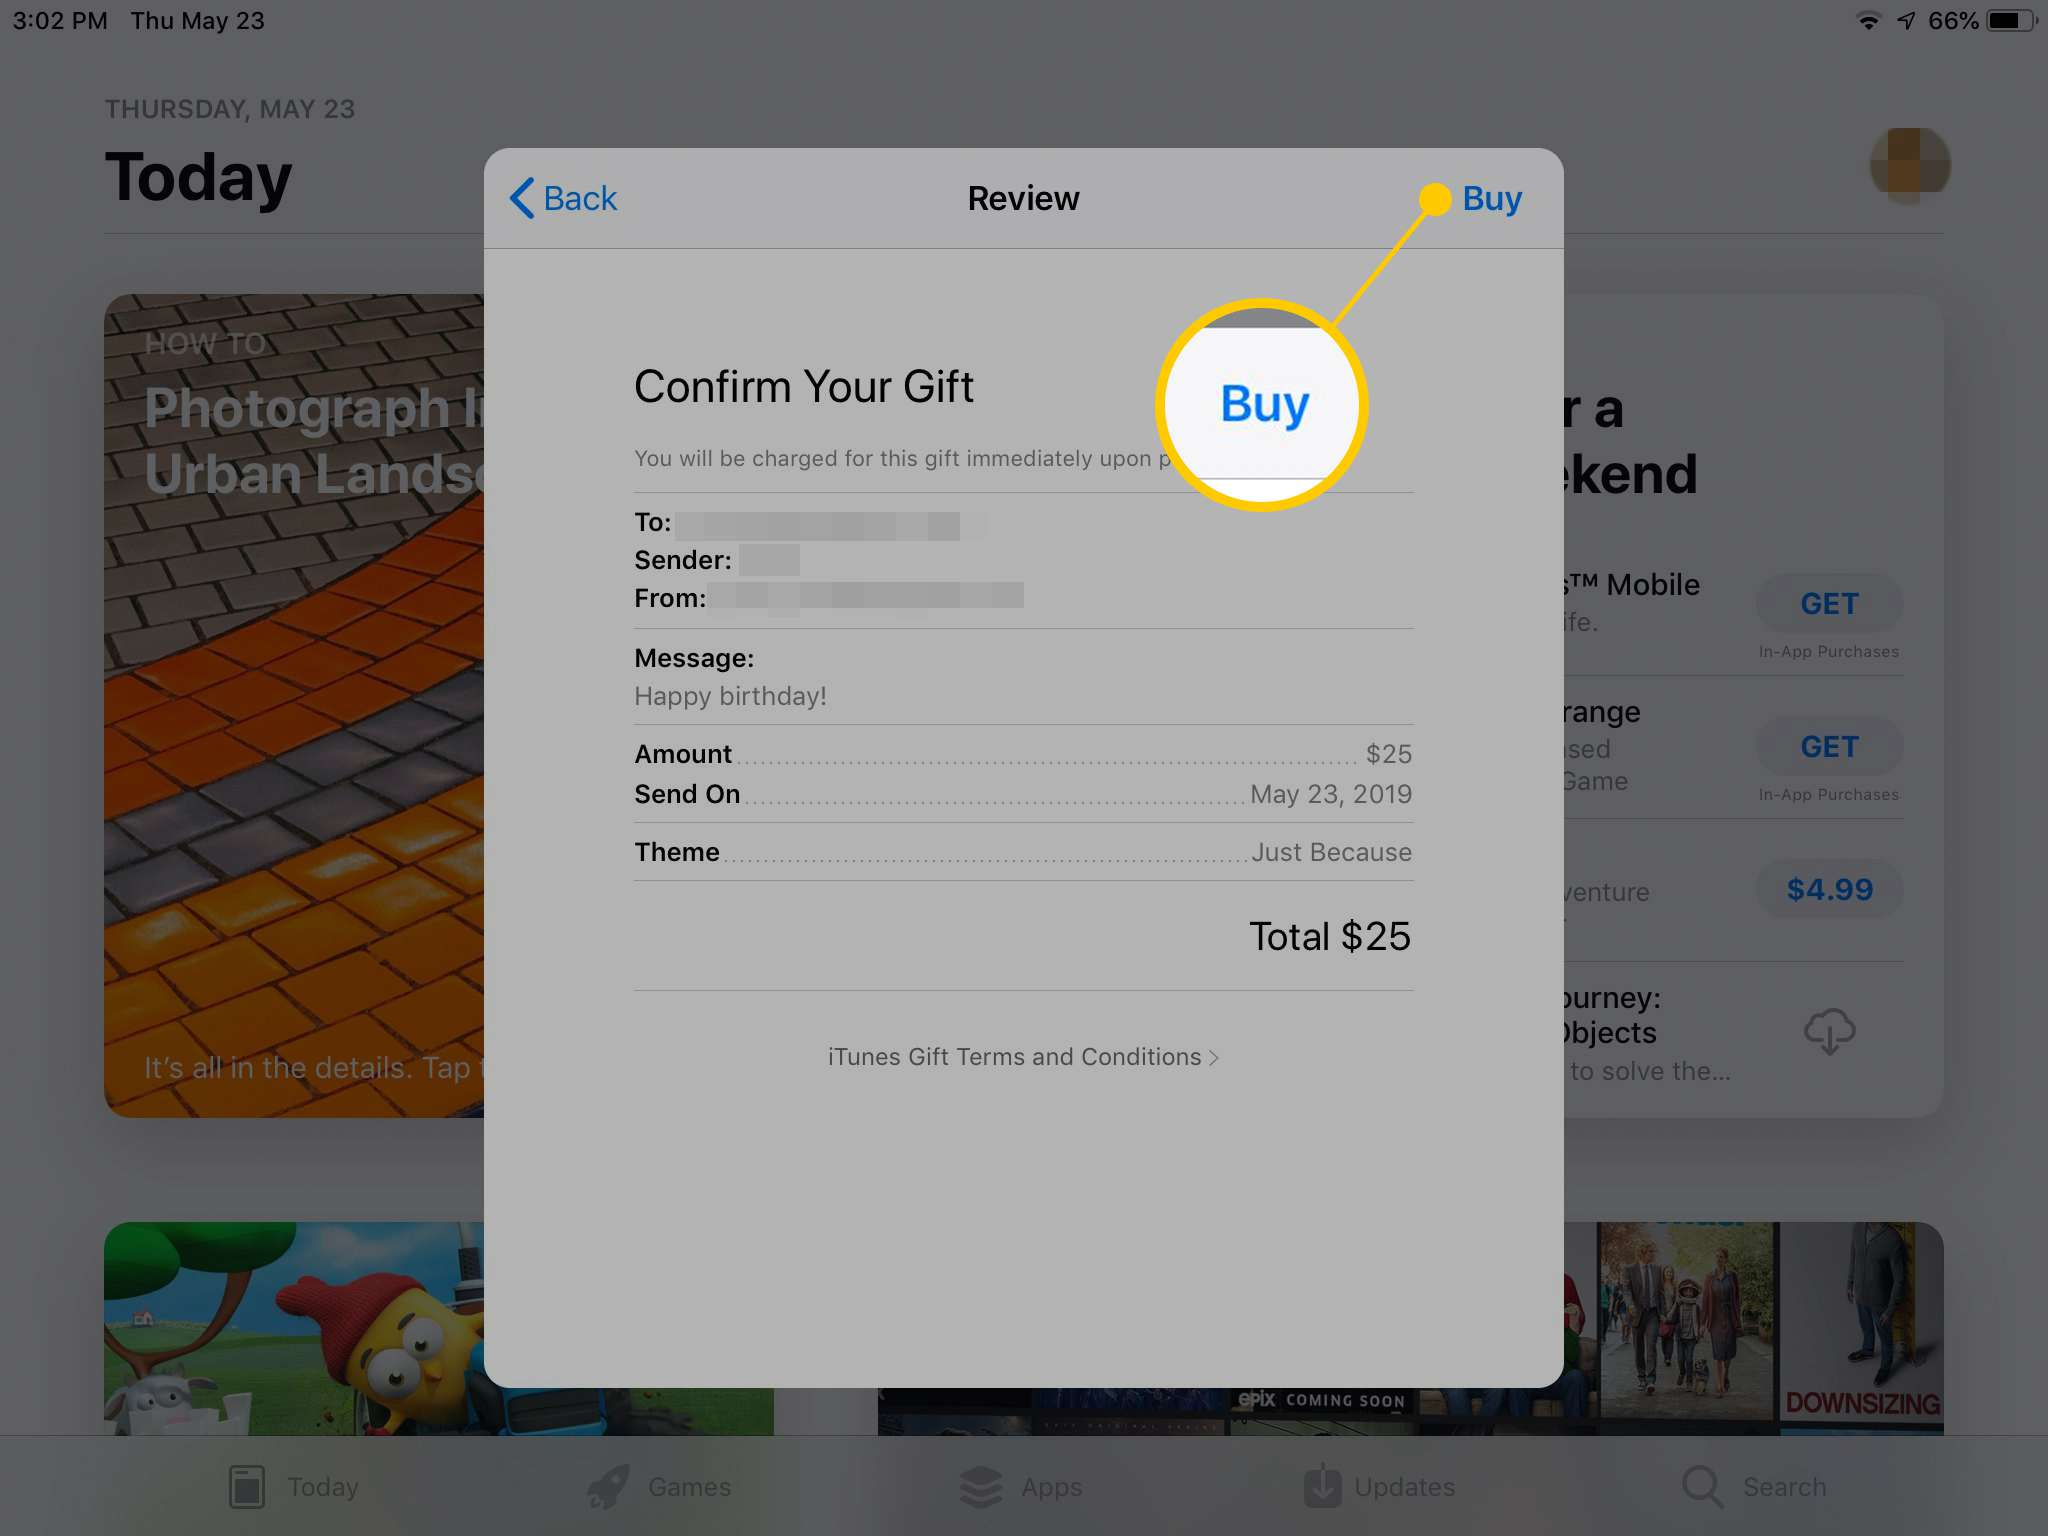 Buy button in Gift Card dialog on App Store